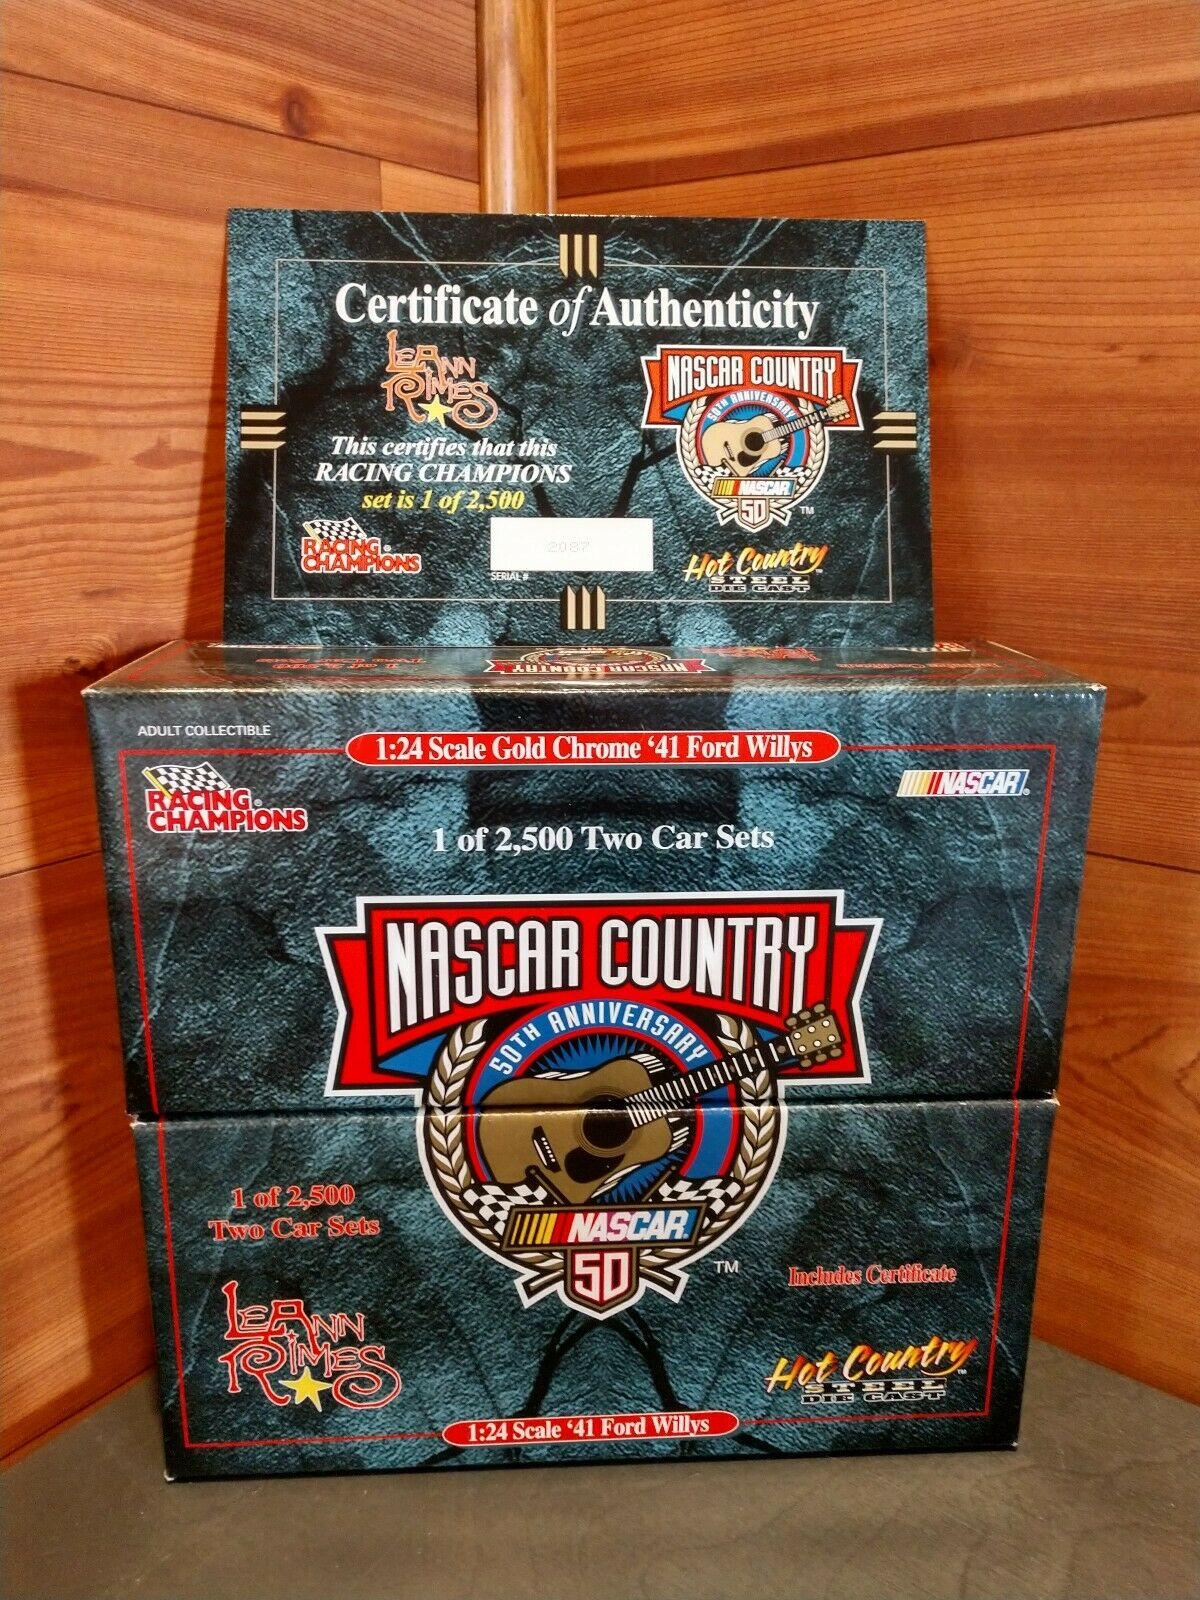 1 NEW RACING CHAMPIONS HOT COUNTRY STEEL LEANN RIMES '41 FORD WILLYS 2 CAR SET